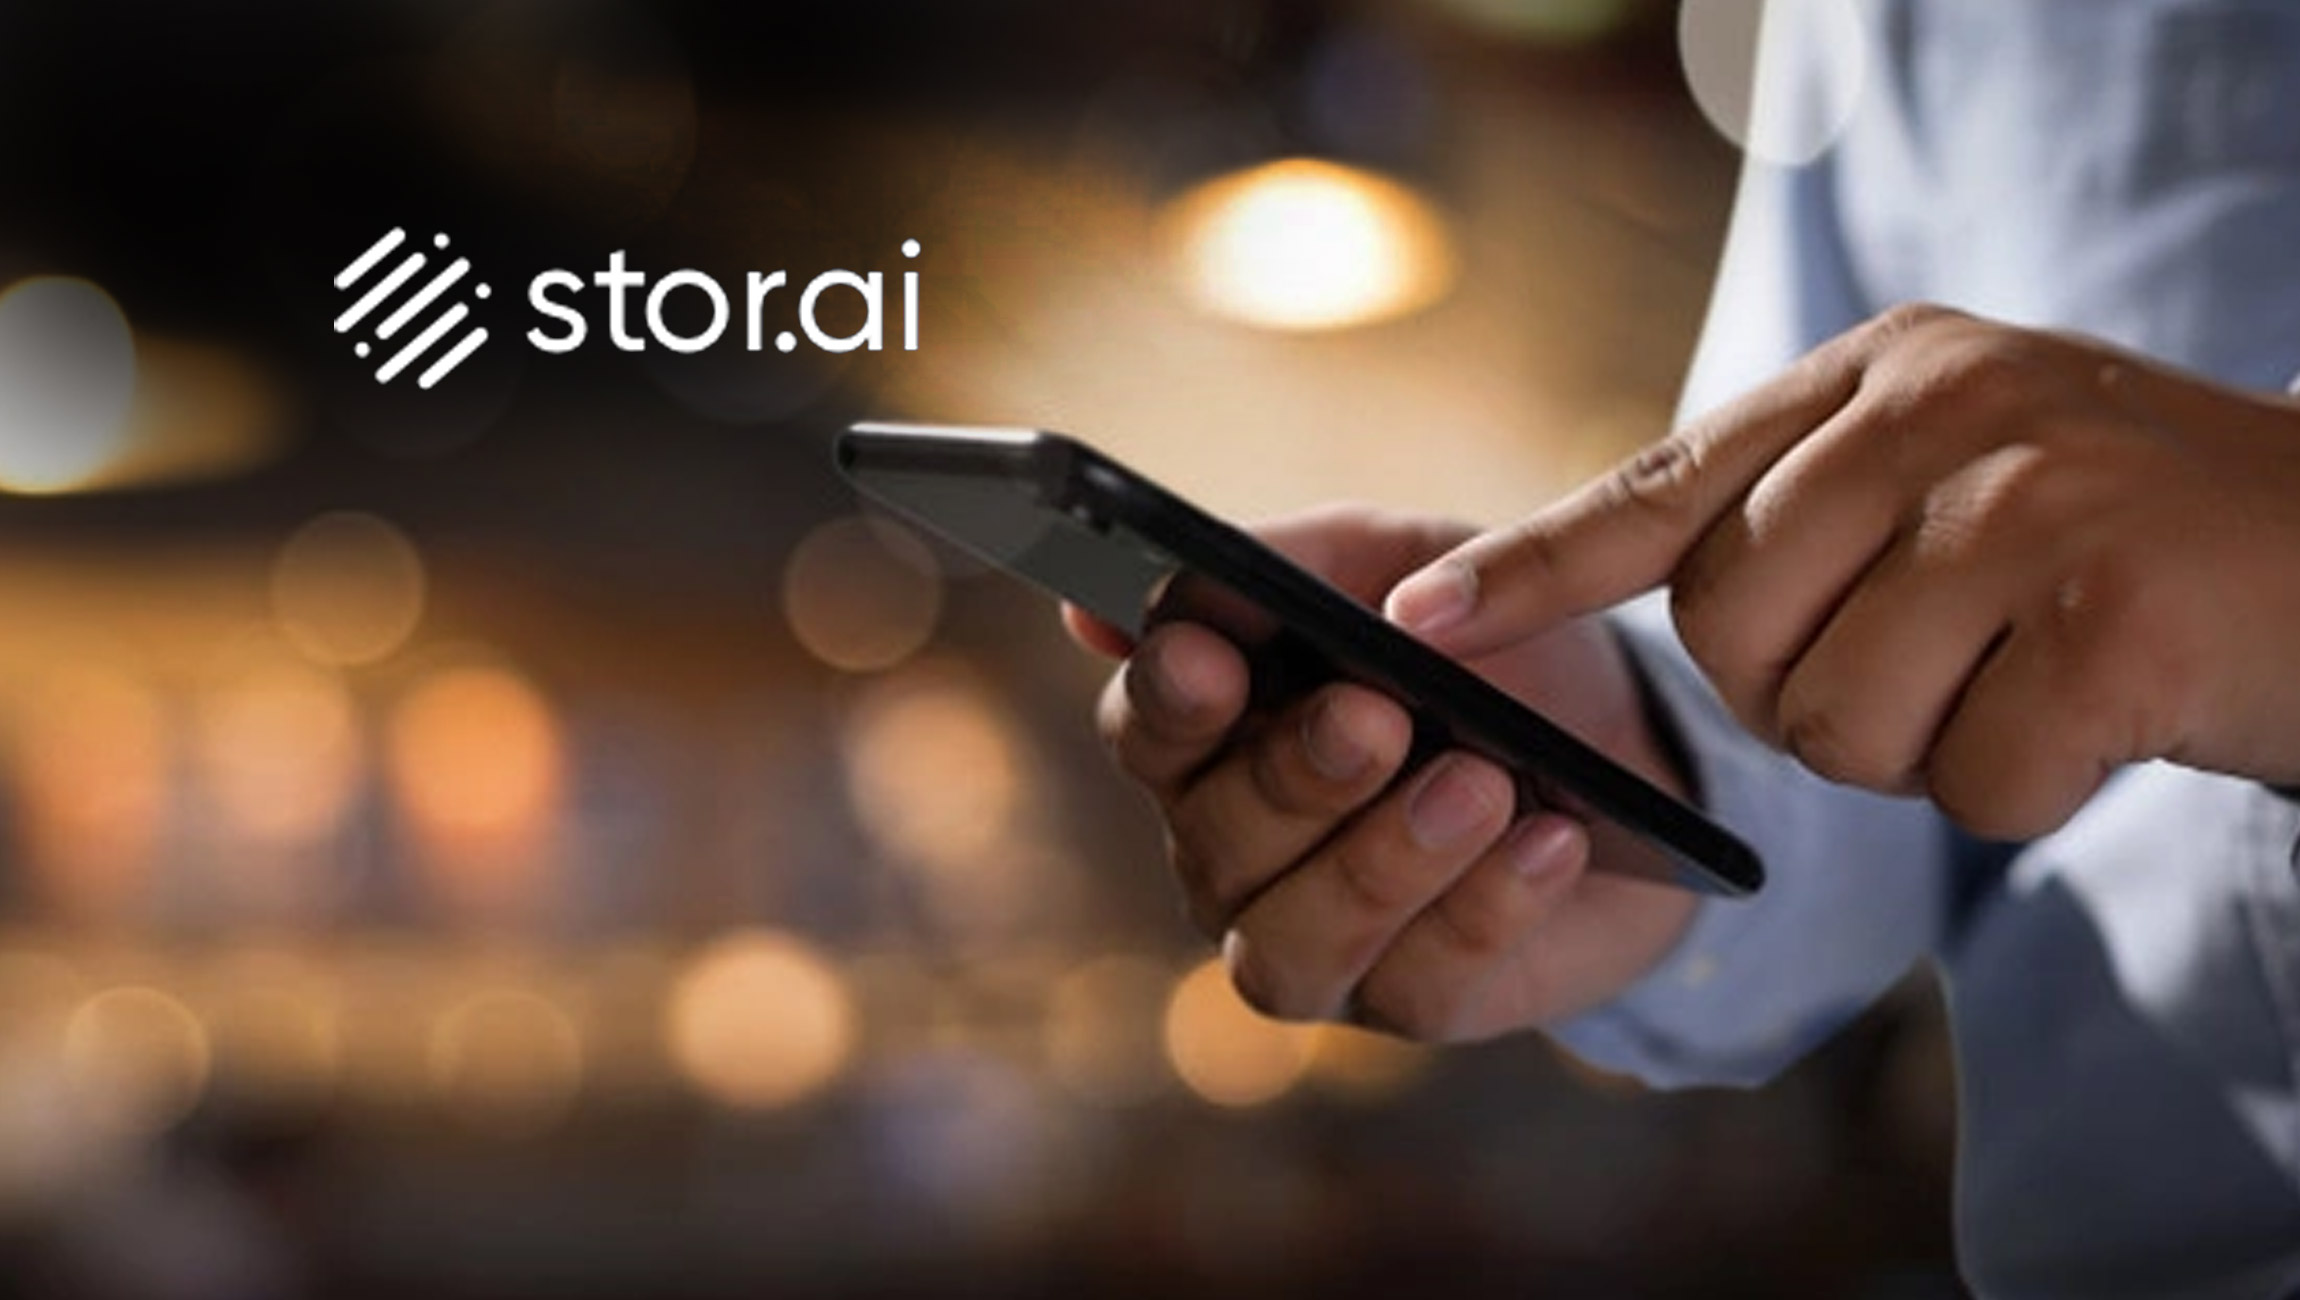 Stor.ai-Launches-New-Picking-App-to-Improve-Efficiency-and-Profitability-in-Grocery-Fulfillment